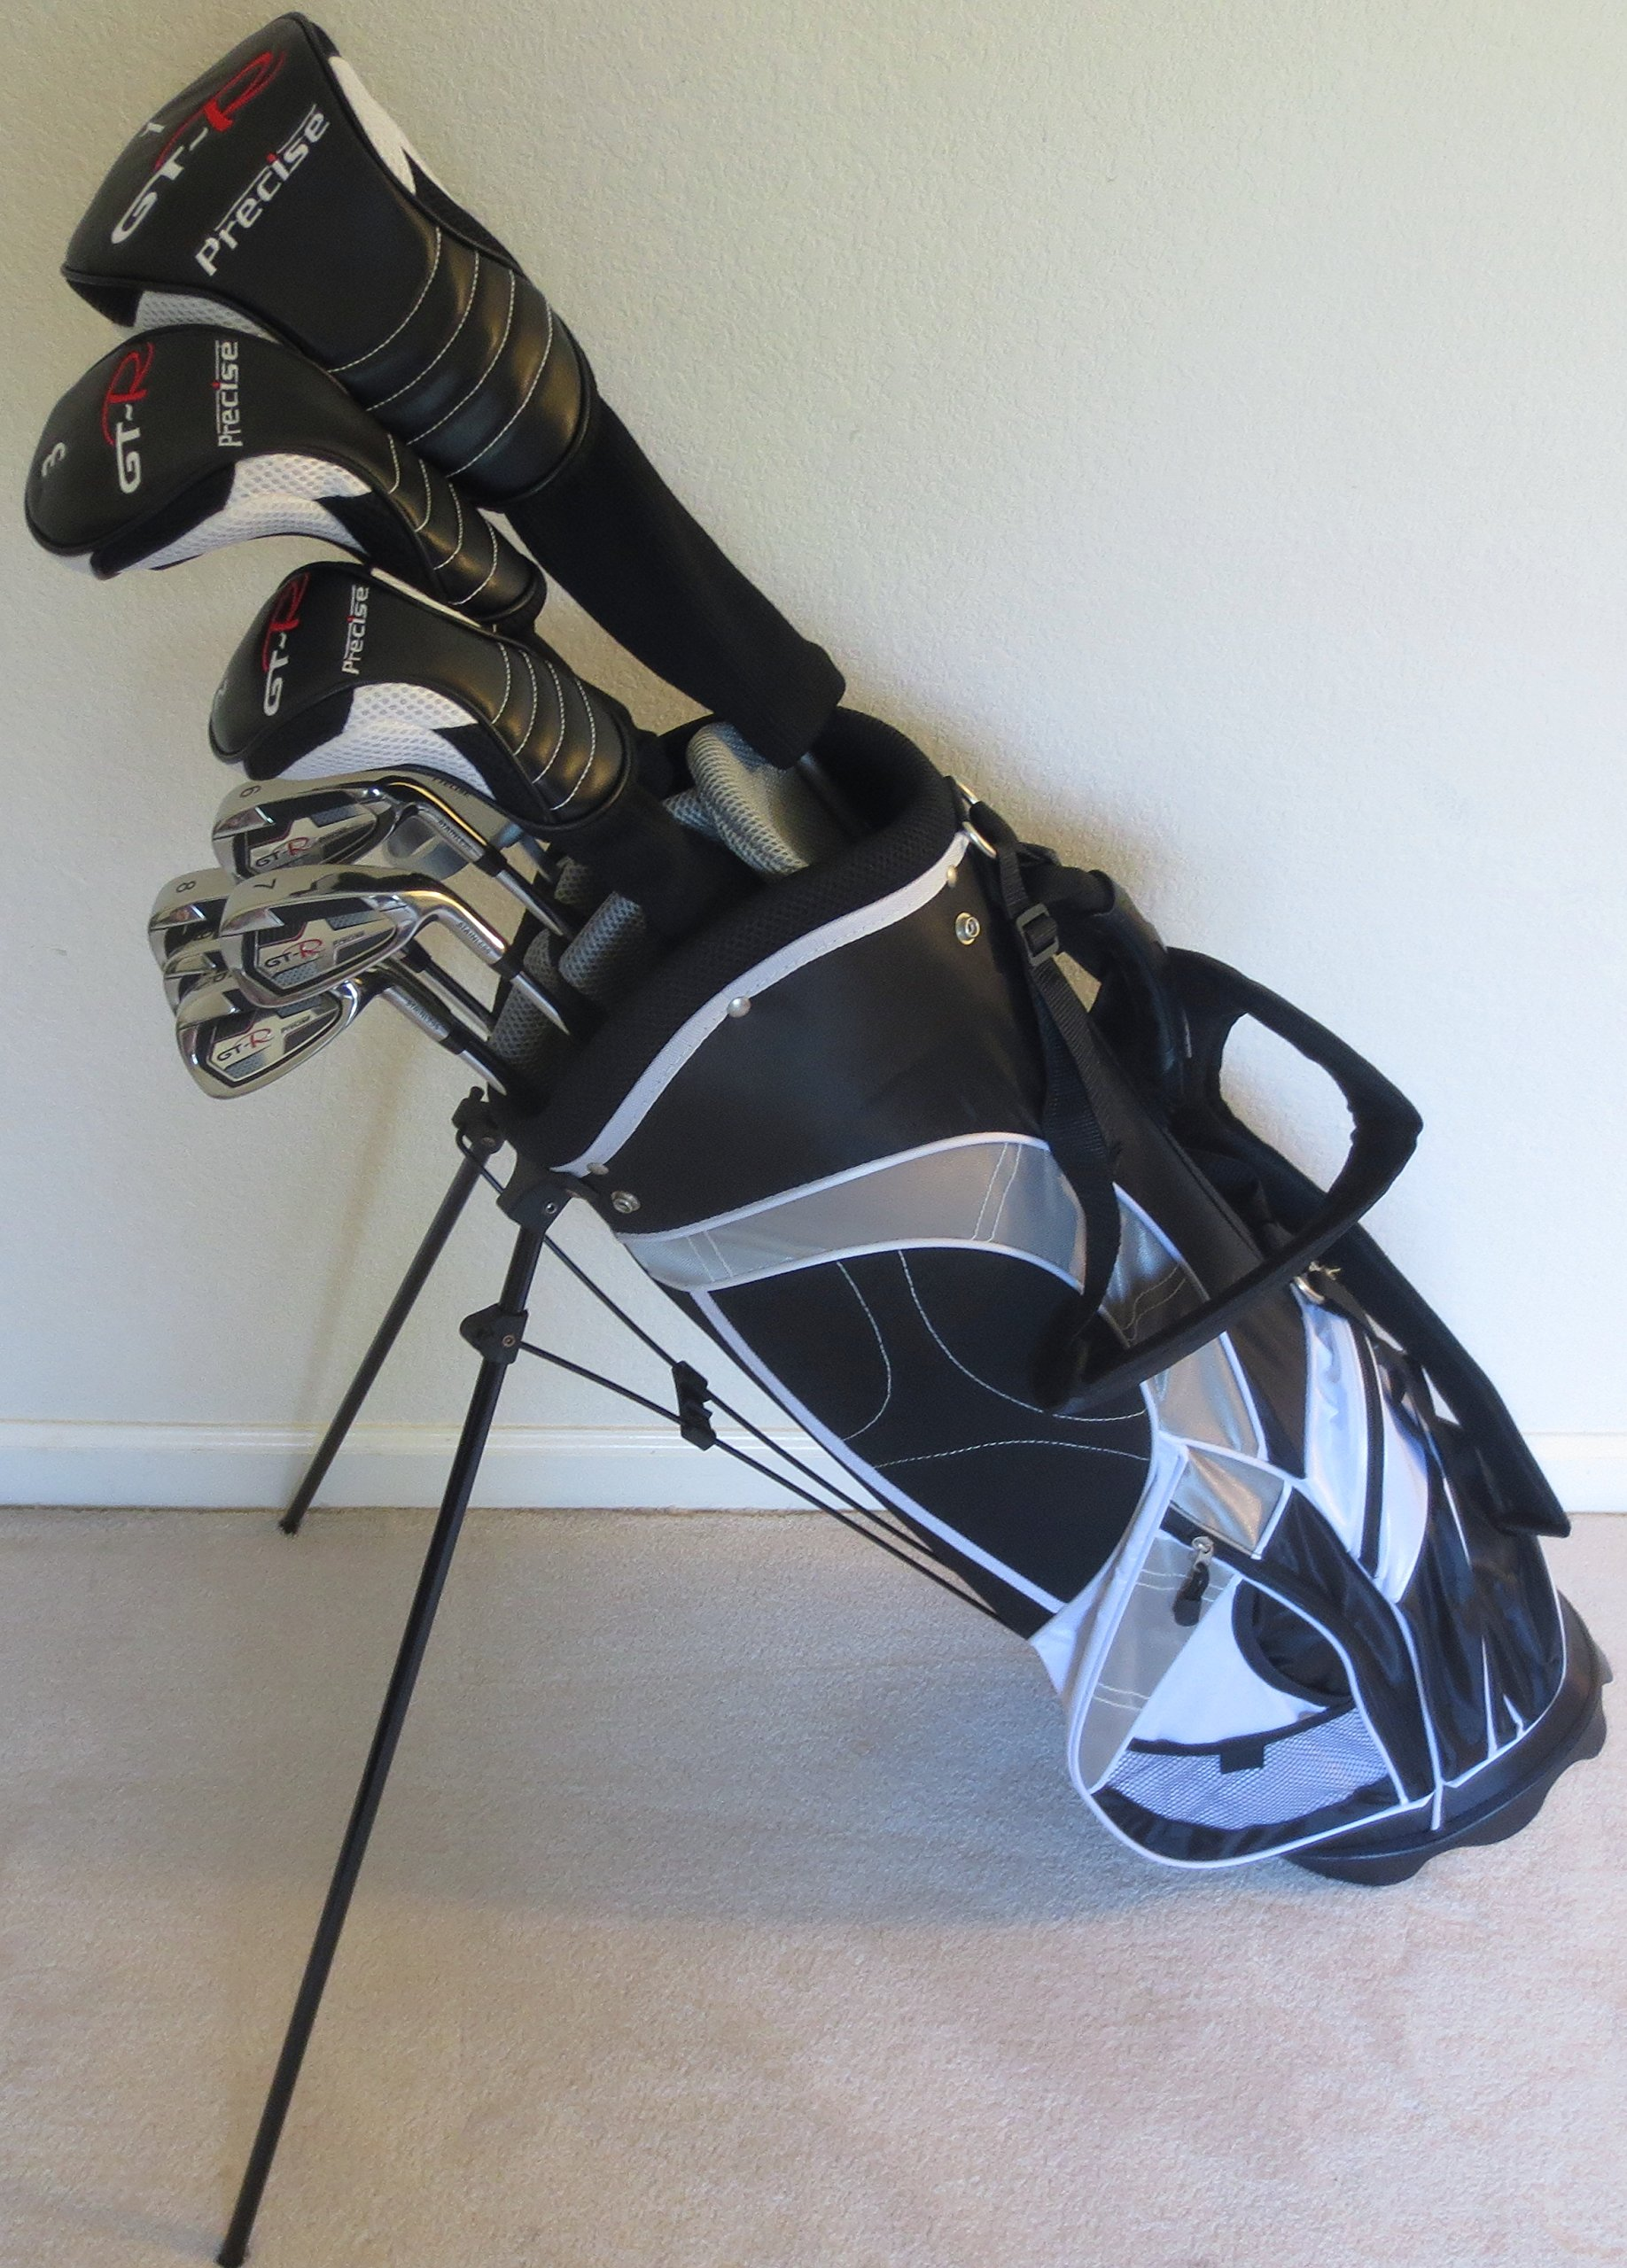 Mens Complete Golf Set for Tall Men 6'0''- 6''6 Tall Driver, Fairway Wood, Hybrids, Irons, Putter, Stand Bag by Excel (Image #1)